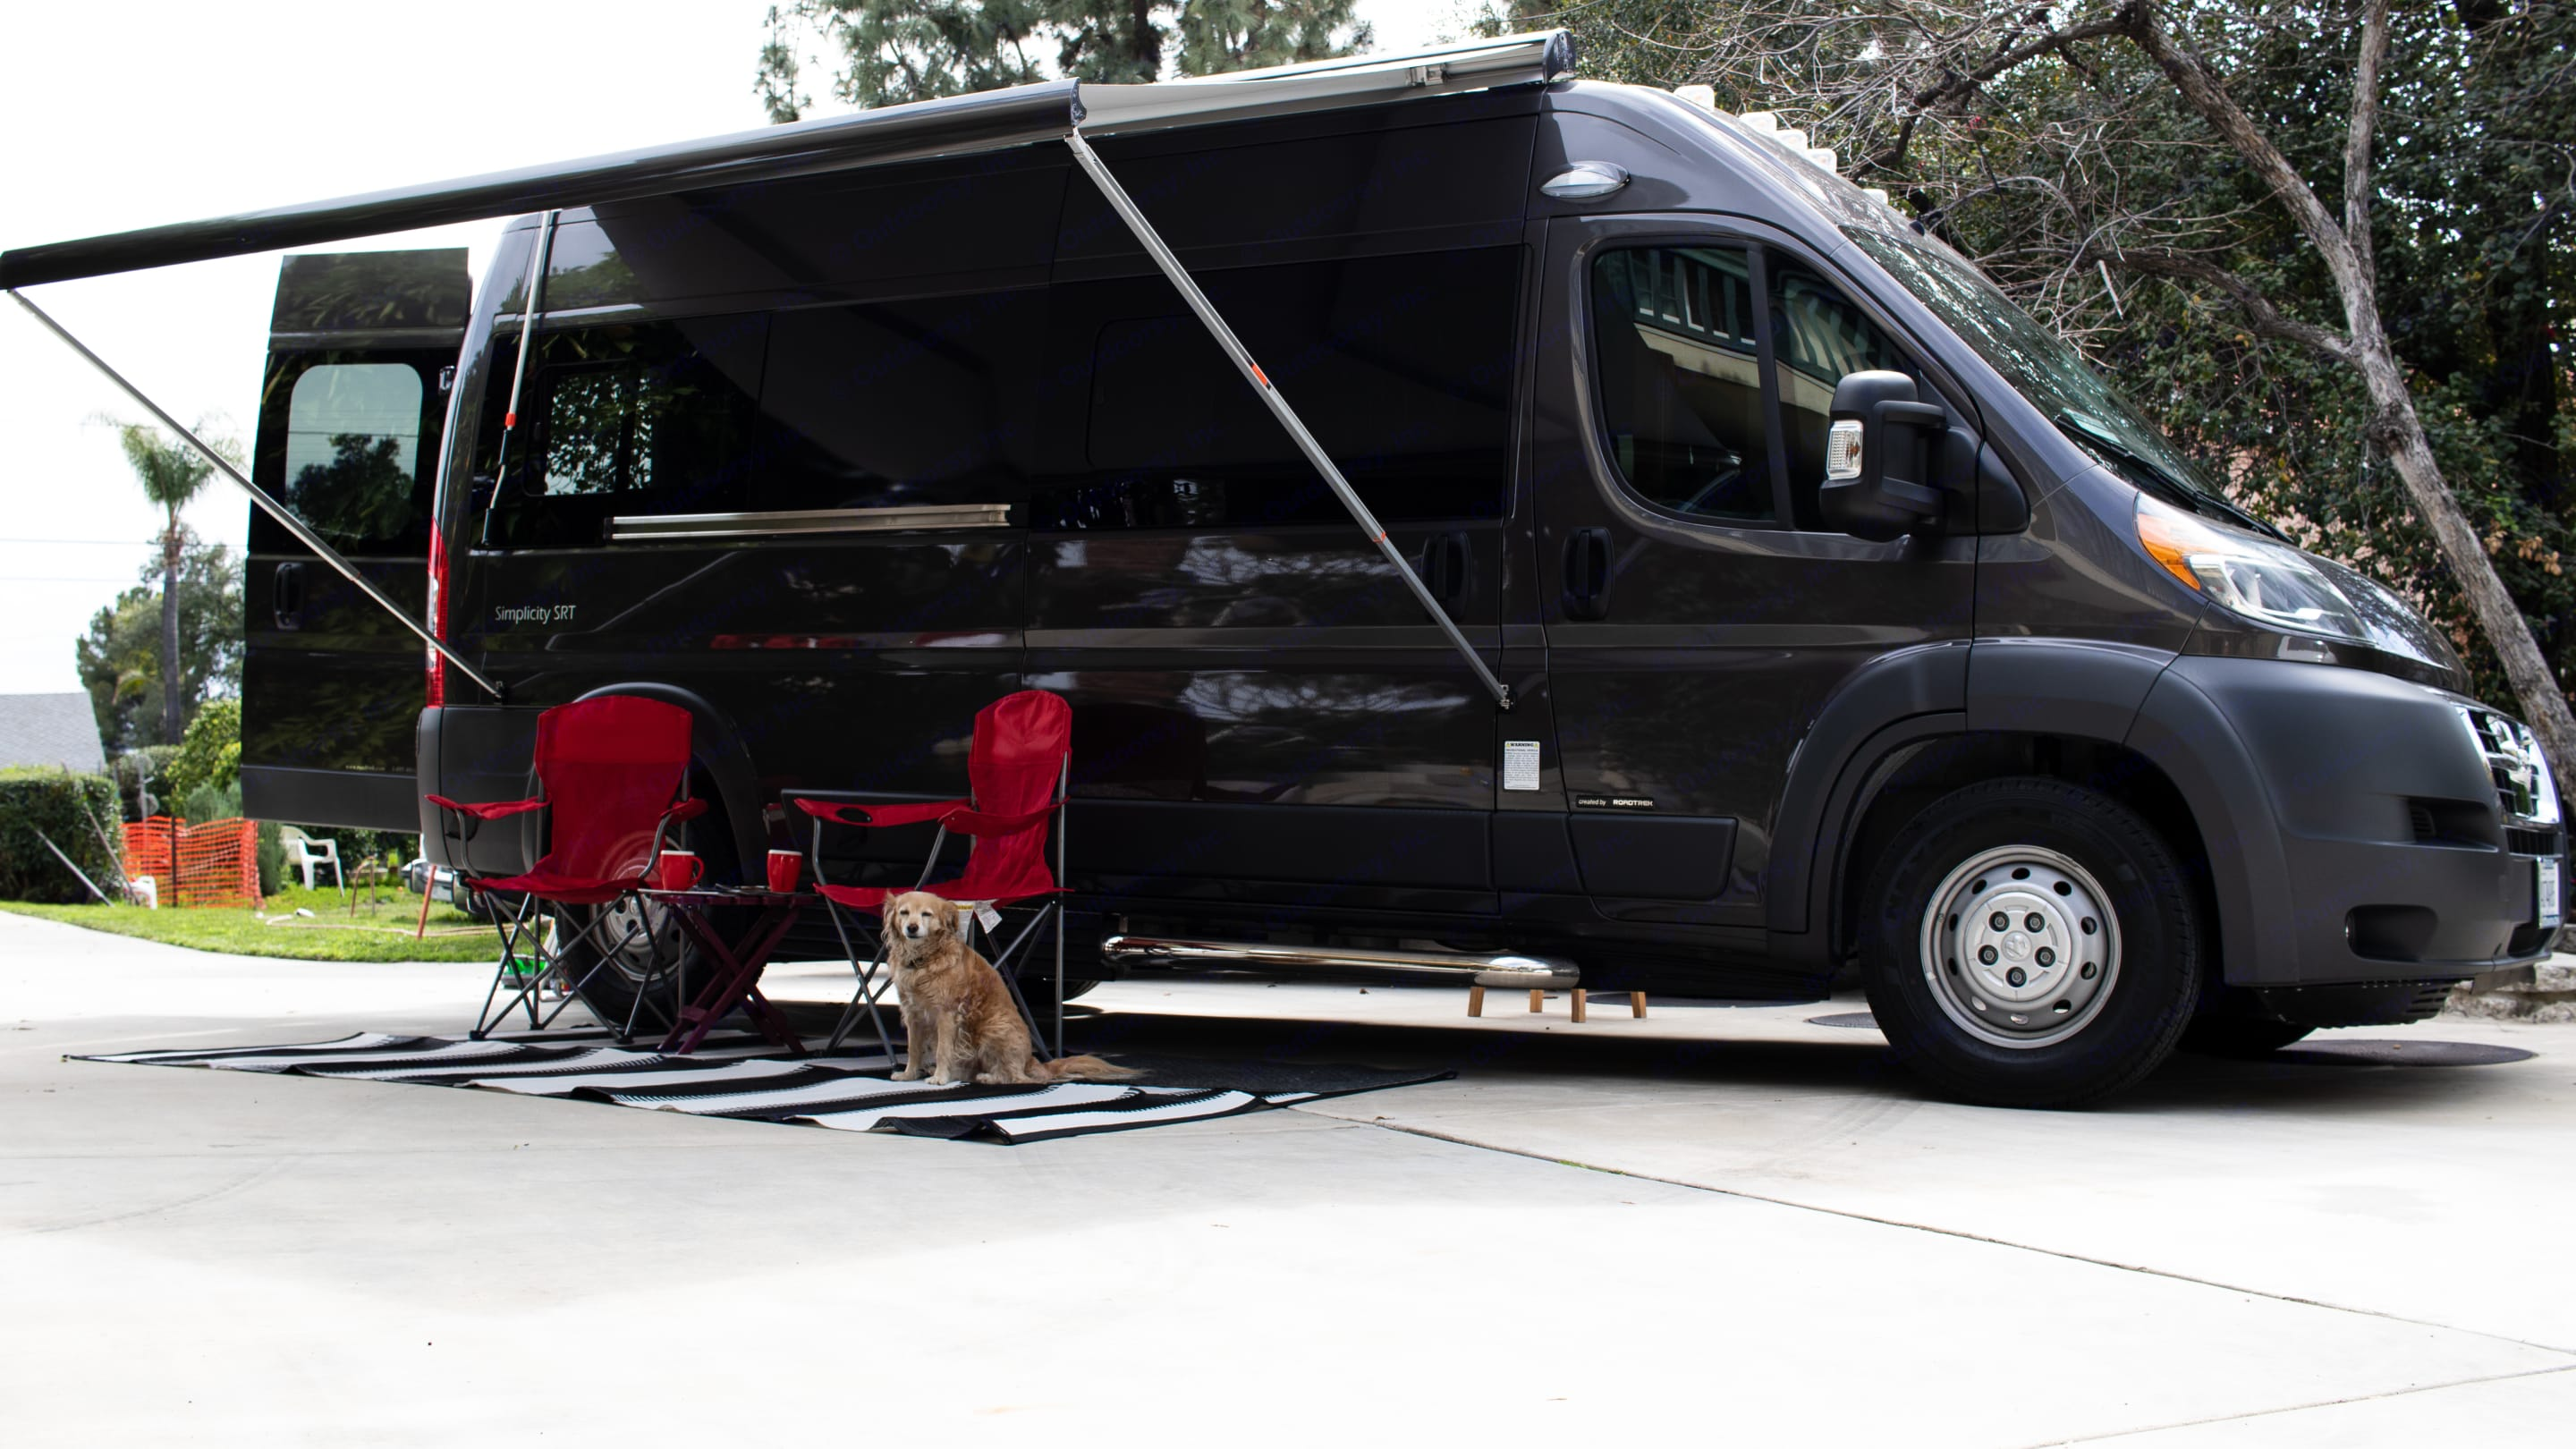 the easy to use awning gives plenty of shade (dog not included). Roadtrek simplicity srt 2018